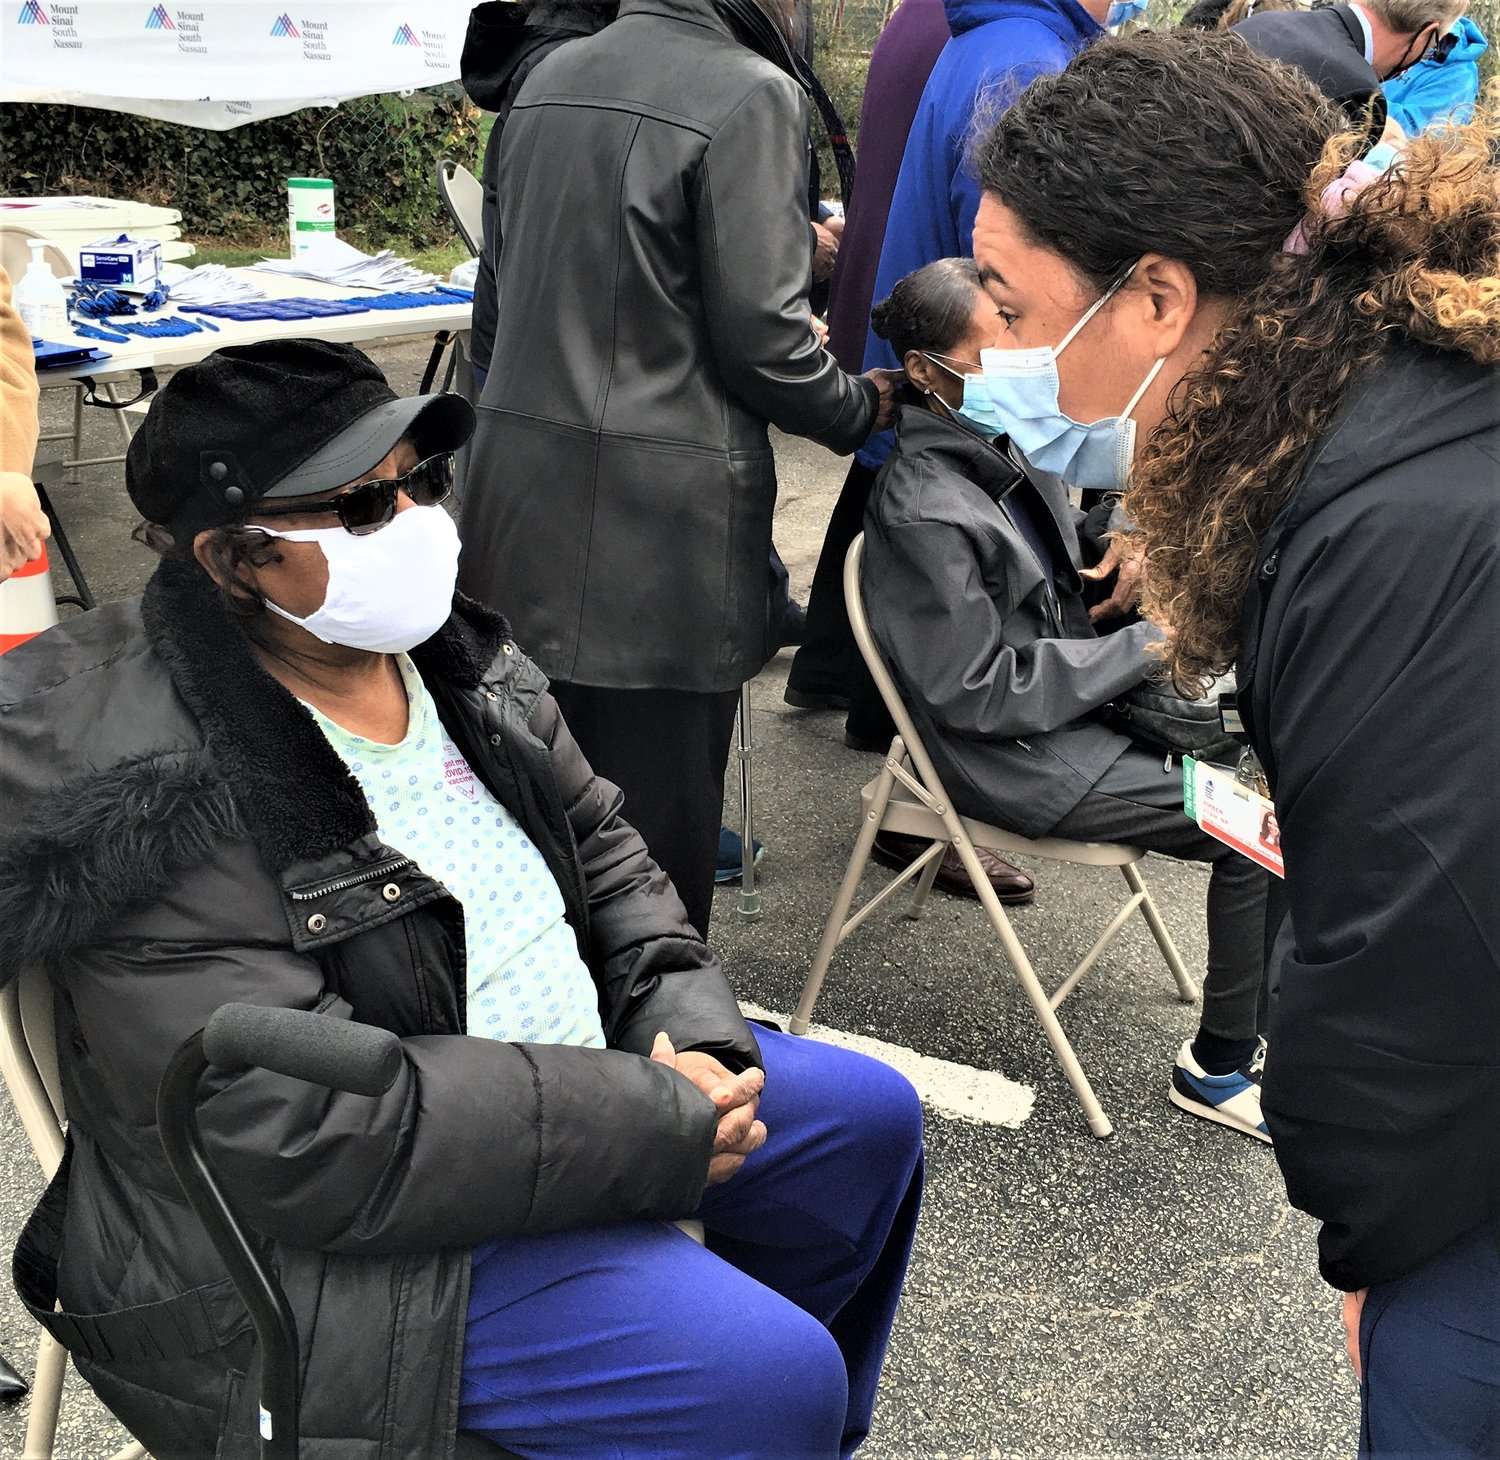 After her vaccination, Elizabeth Haggood, of Uniondale, received instructions from Amber Vitale, director of the Pandemic Department at Mount Sinai South Nassau.